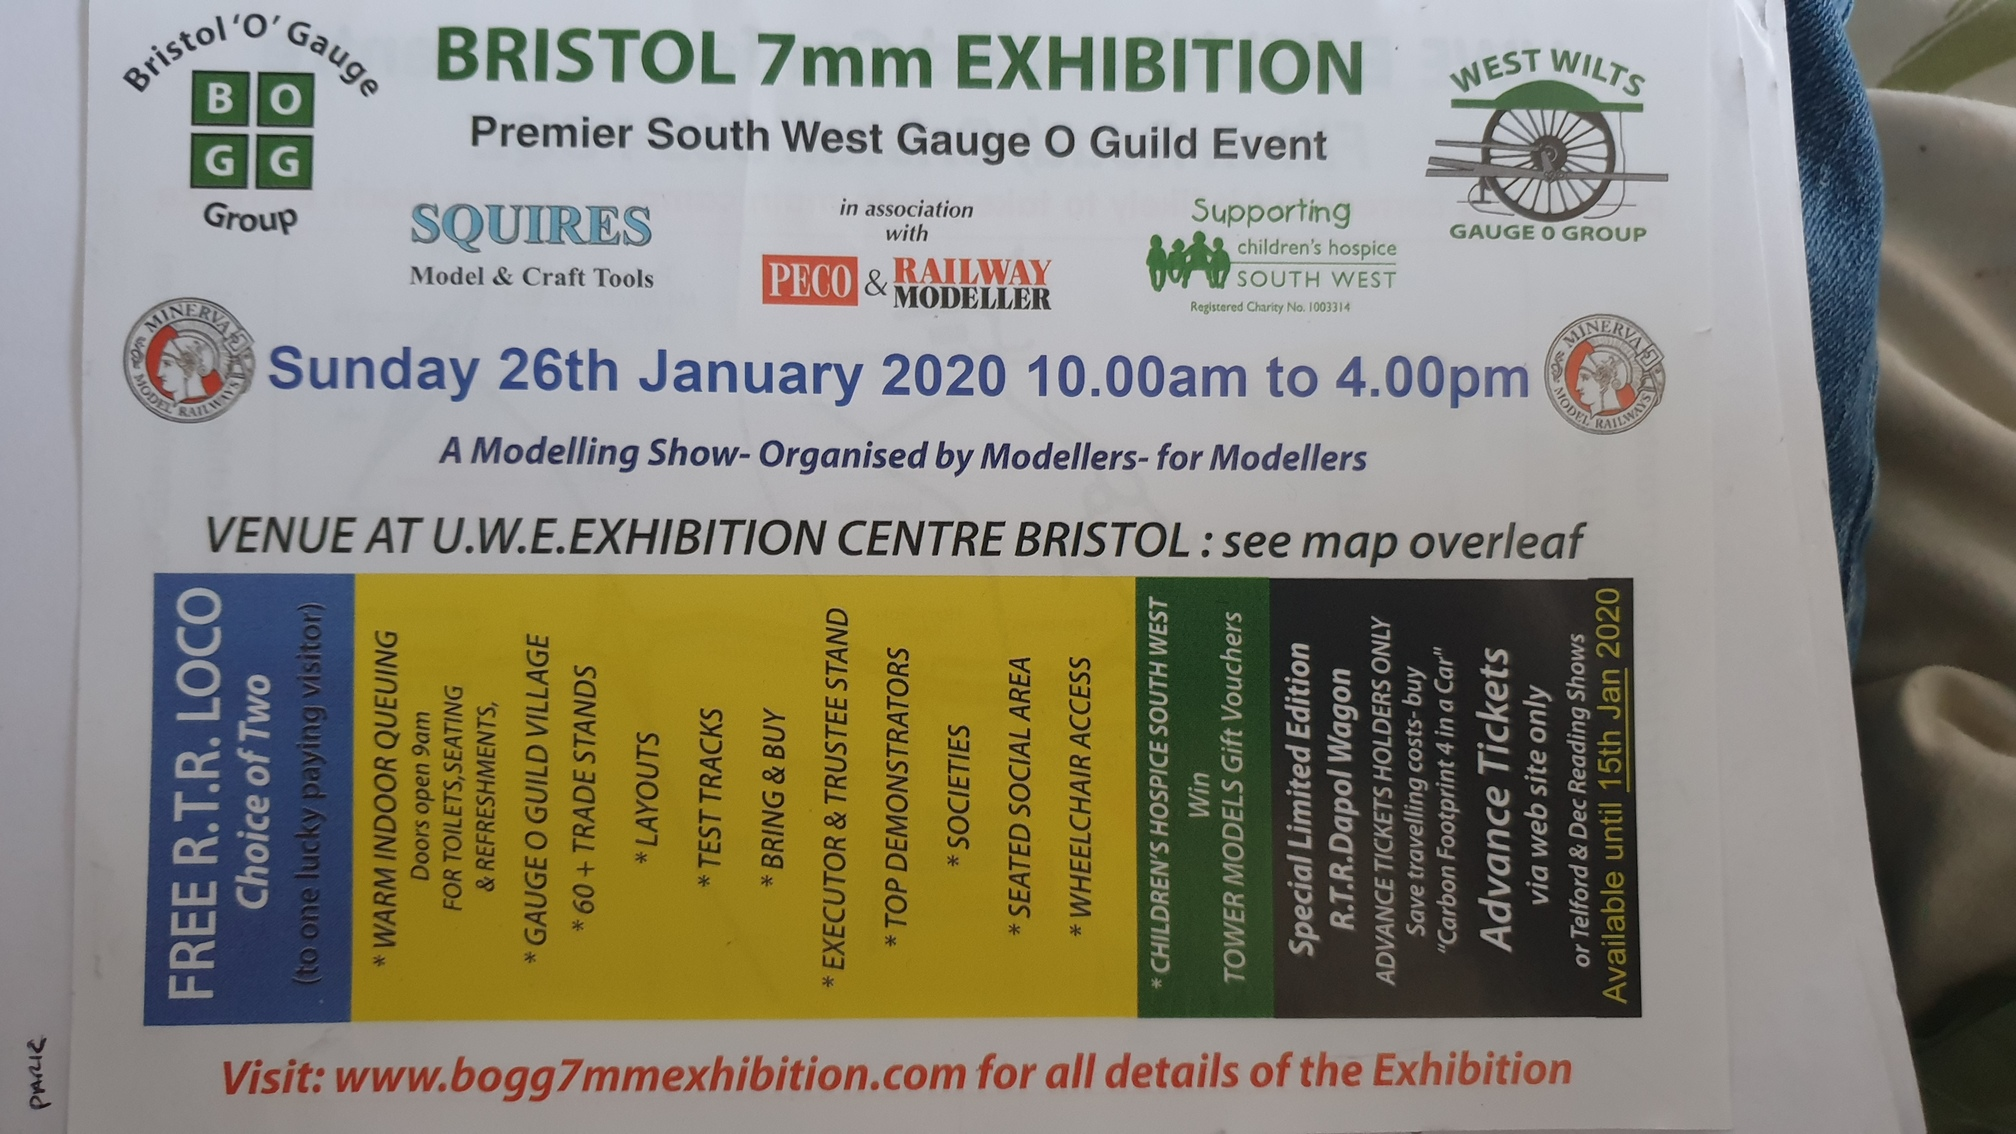 bristol 7mm exhibition